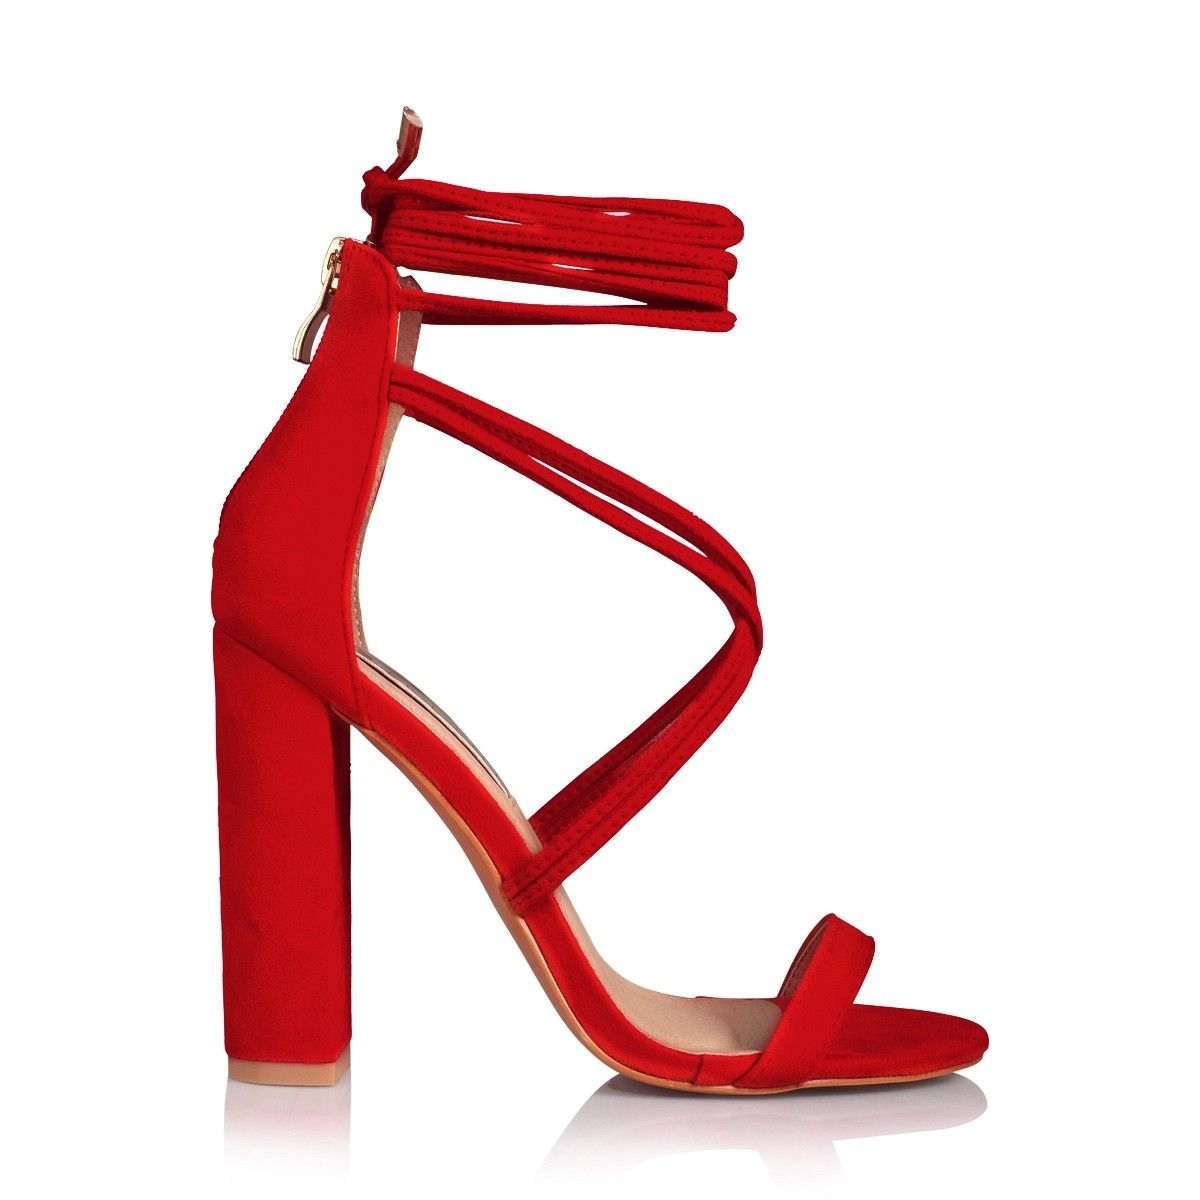 79866271c1a Lyra red suede   Shoes   Strappy block heels, Shoes, Heels